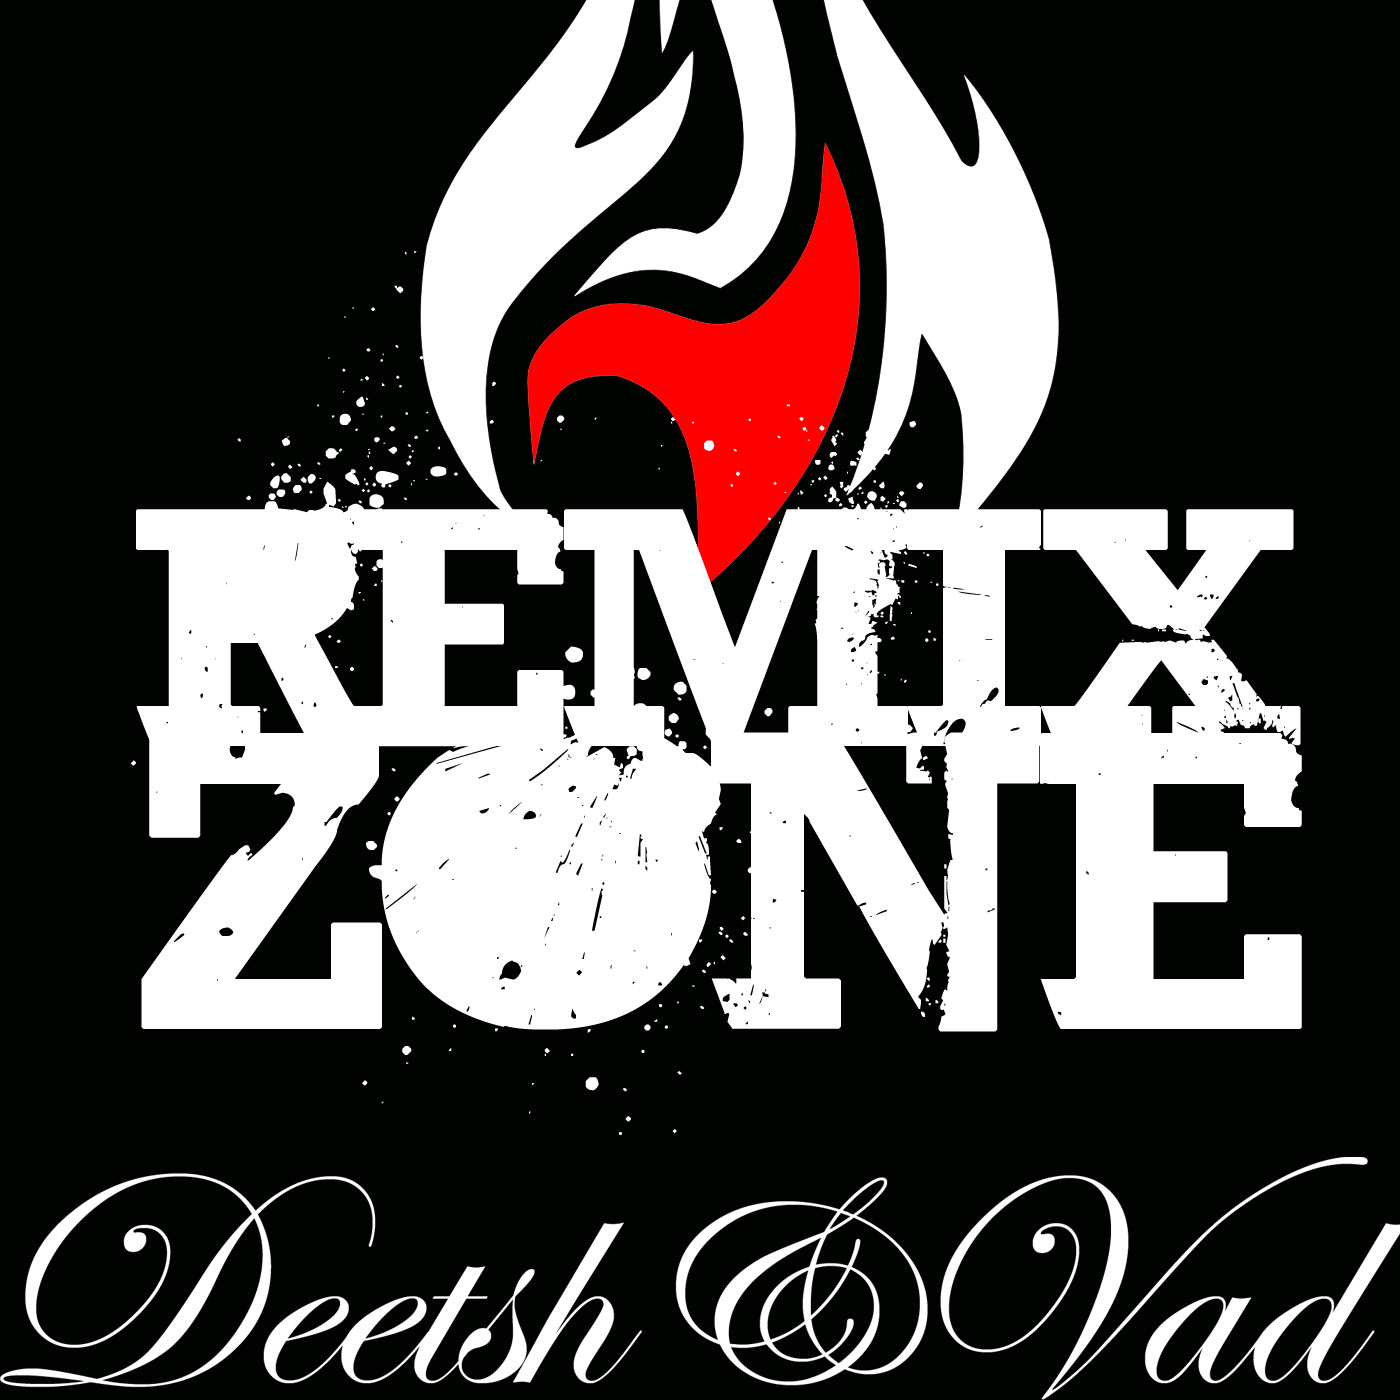 Remix Zone, le podcast de Deetsh & Vad